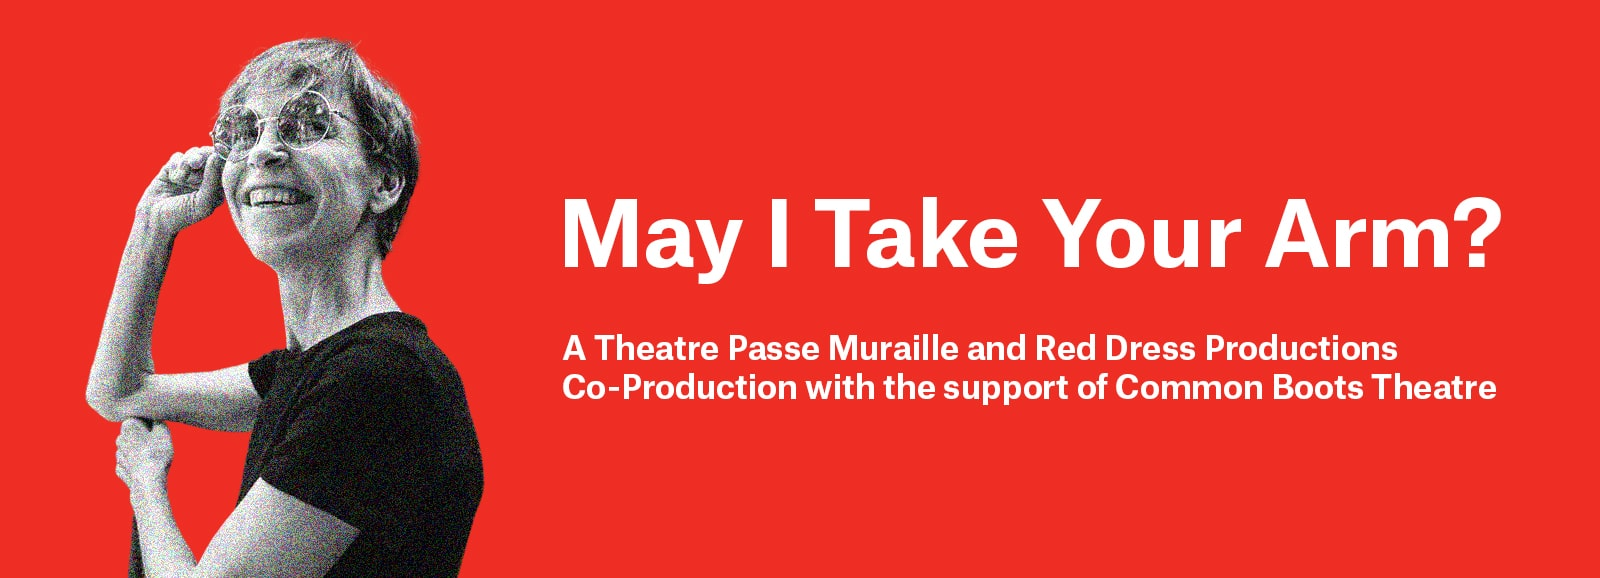 May I take your arm? A Theatre Passe Muraille and Red Dress production co-production with the support of Common boots theatre. Image has a red background and an image of Alex smiling